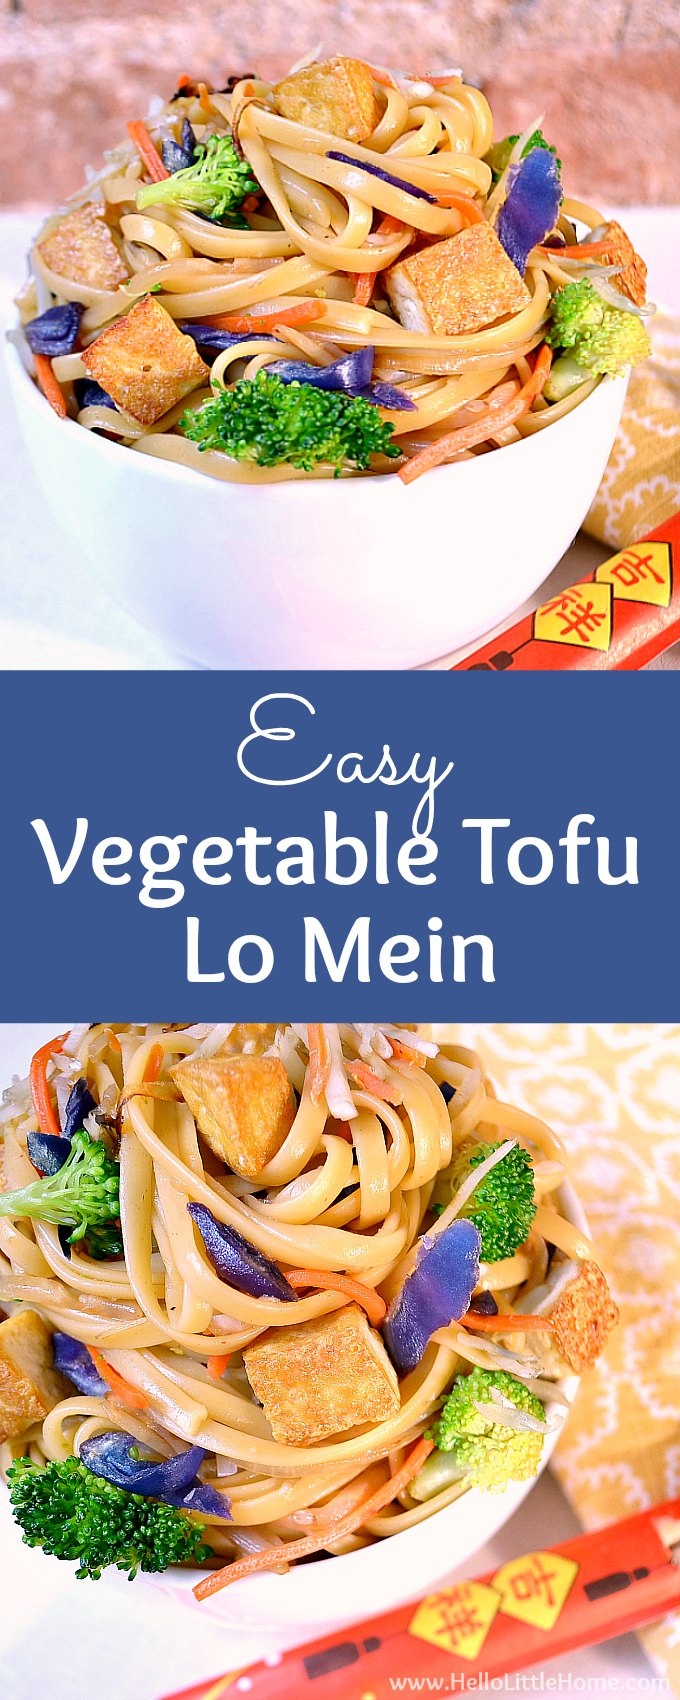 Easy Vegetable Tofu Lo Mein recipe … skip the Chinese takeout and make this tasty vegetarian lo mein instead! This easy lo mein recipe is ready fast and packed with veggies (cabbage, broccoli + more), noodles, and a delish sauce. Your whole family will love this homemade vegan lo mein recipe that has none of the junk, but all of the taste of your restaurant fave! | Hello Little Home #lomein #lomeinrecipe #veganlomein #vegetarianlomein #vegetarian #chinesefood #noodles #veganrecipes #stirfry